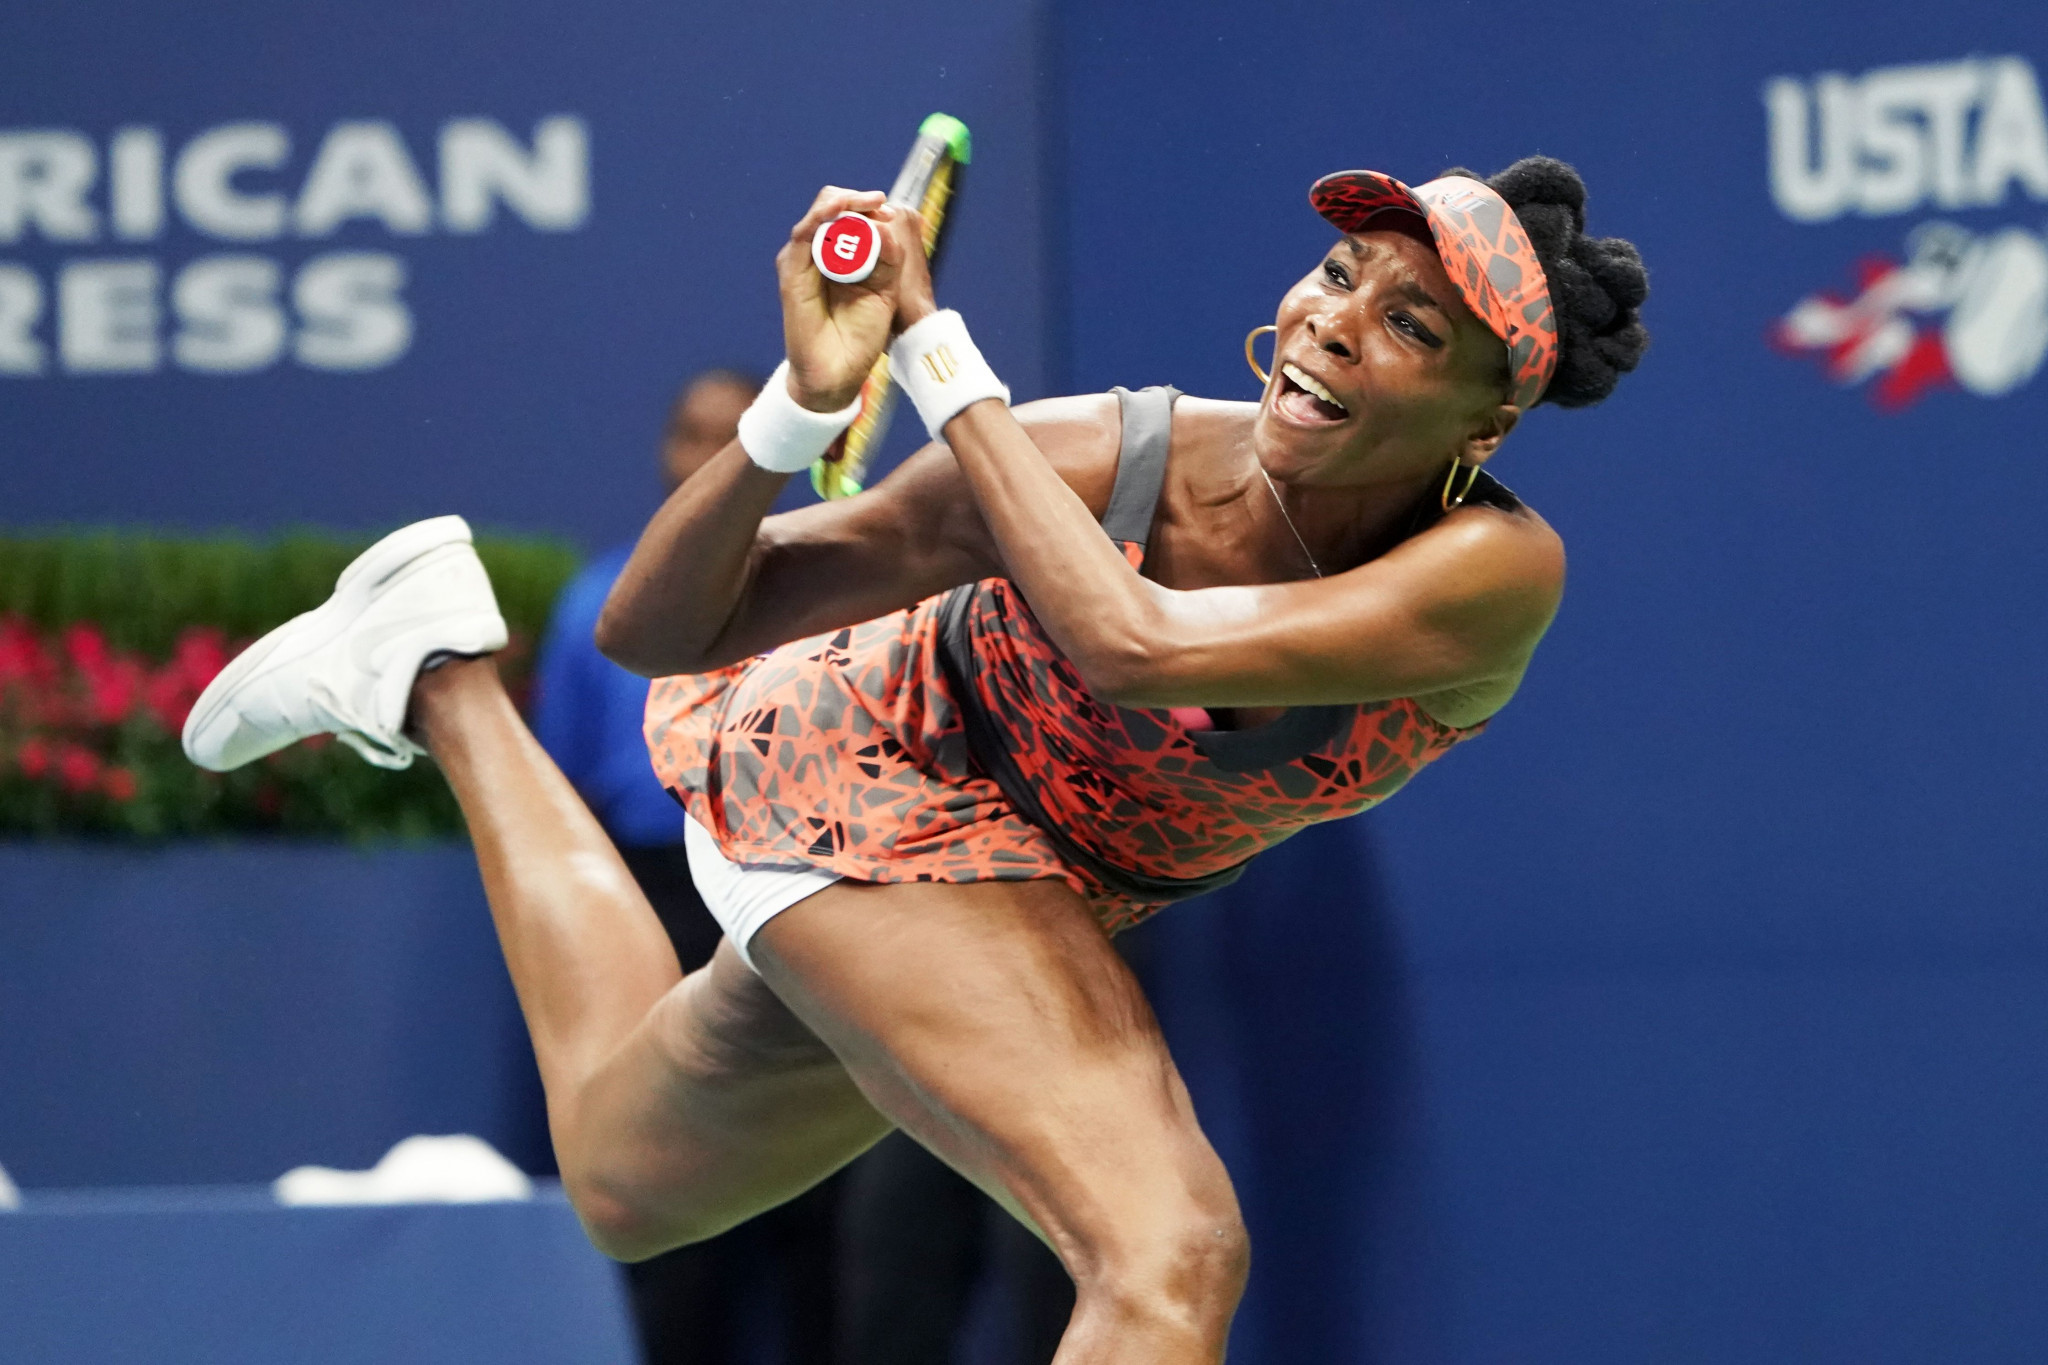 Williams reaches US Open semi-finals after thrilling win over Kvitová